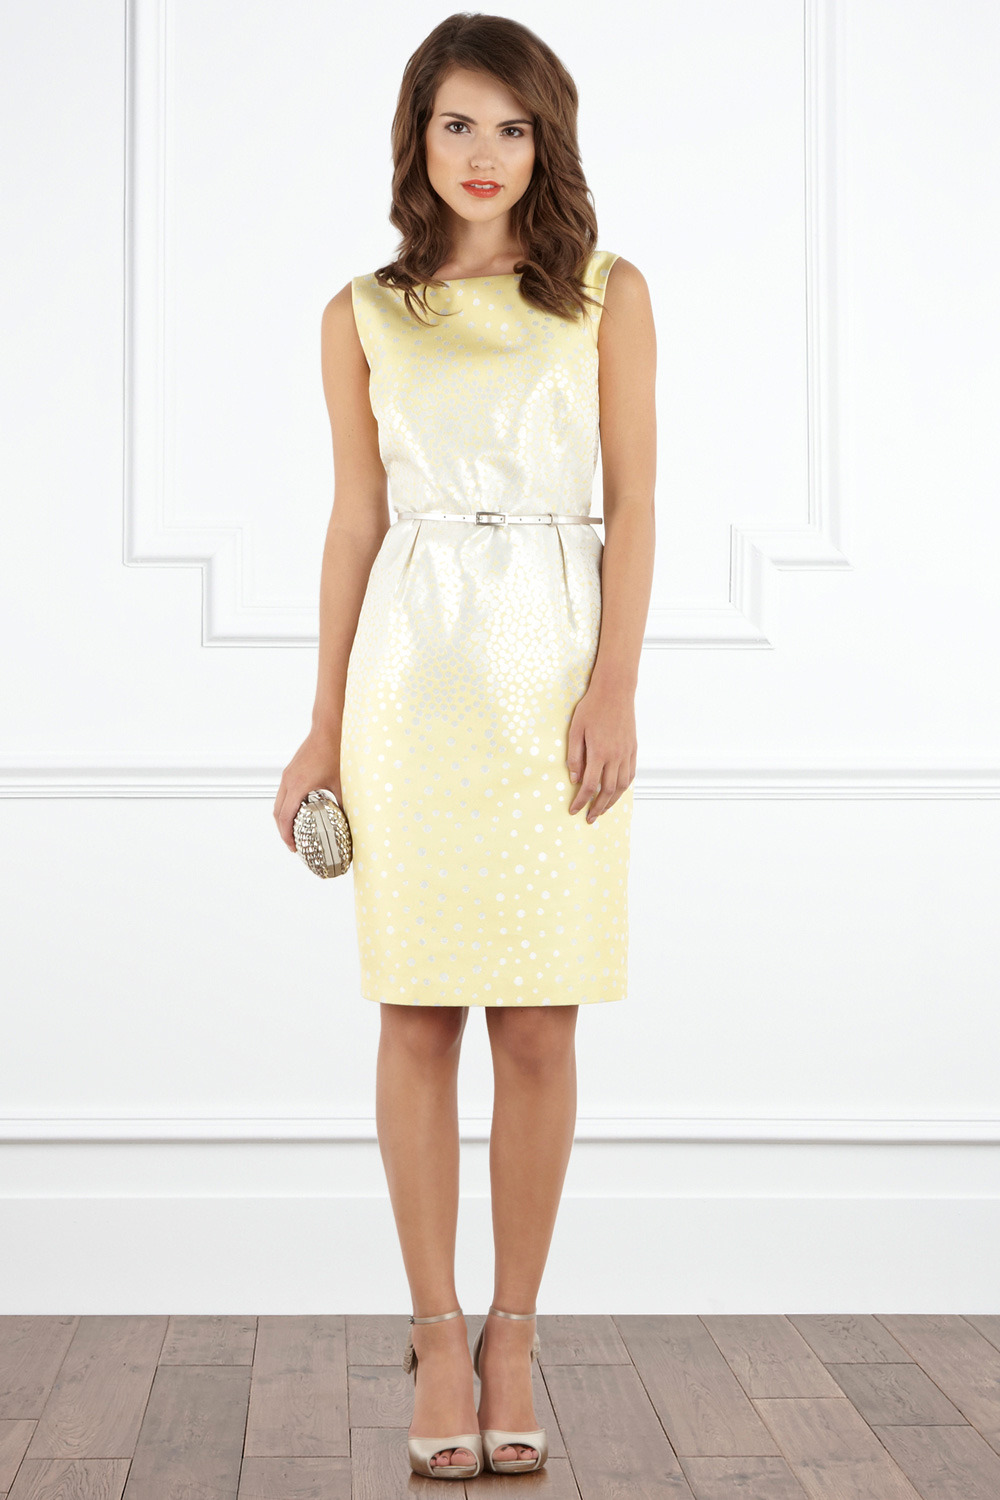 Beverley Dress - style: shift; neckline: slash/boat neckline; pattern: lightly patterned, two-tone, patterned/print; sleeve style: sleeveless; waist detail: fitted waist, belted waist/tie at waist/drawstring; predominant colour: primrose yellow; occasions: evening, occasion; length: on the knee; fit: body skimming; fibres: polyester/polyamide - mix; material texture: chiffon; hip detail: structured pleats at hip; trends: pastels; sleeve length: sleeveless; texture group: sheer fabrics/chiffon/organza etc.; pattern type: fabric; pattern size: small & light